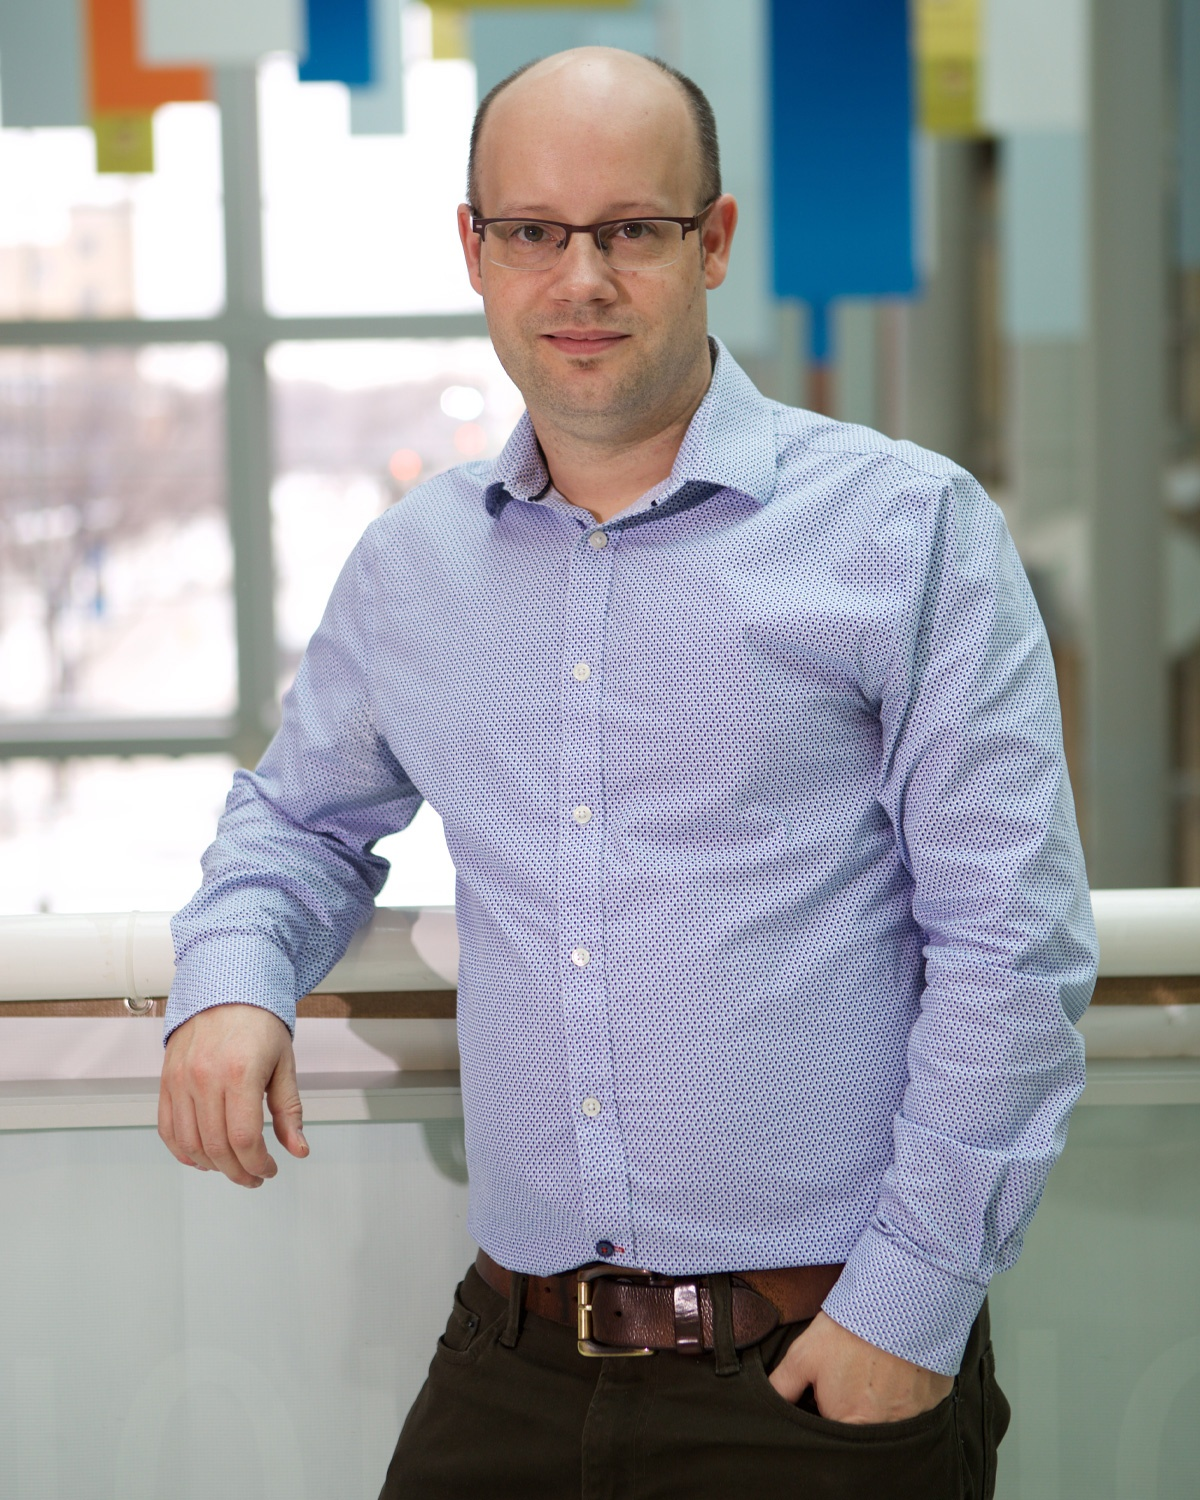 Dr. Benjamin Lindsey, Principal Investigator and Assistant Professor at the University of Manitoba, Department of Human Anatomy and Cell Science, Canada